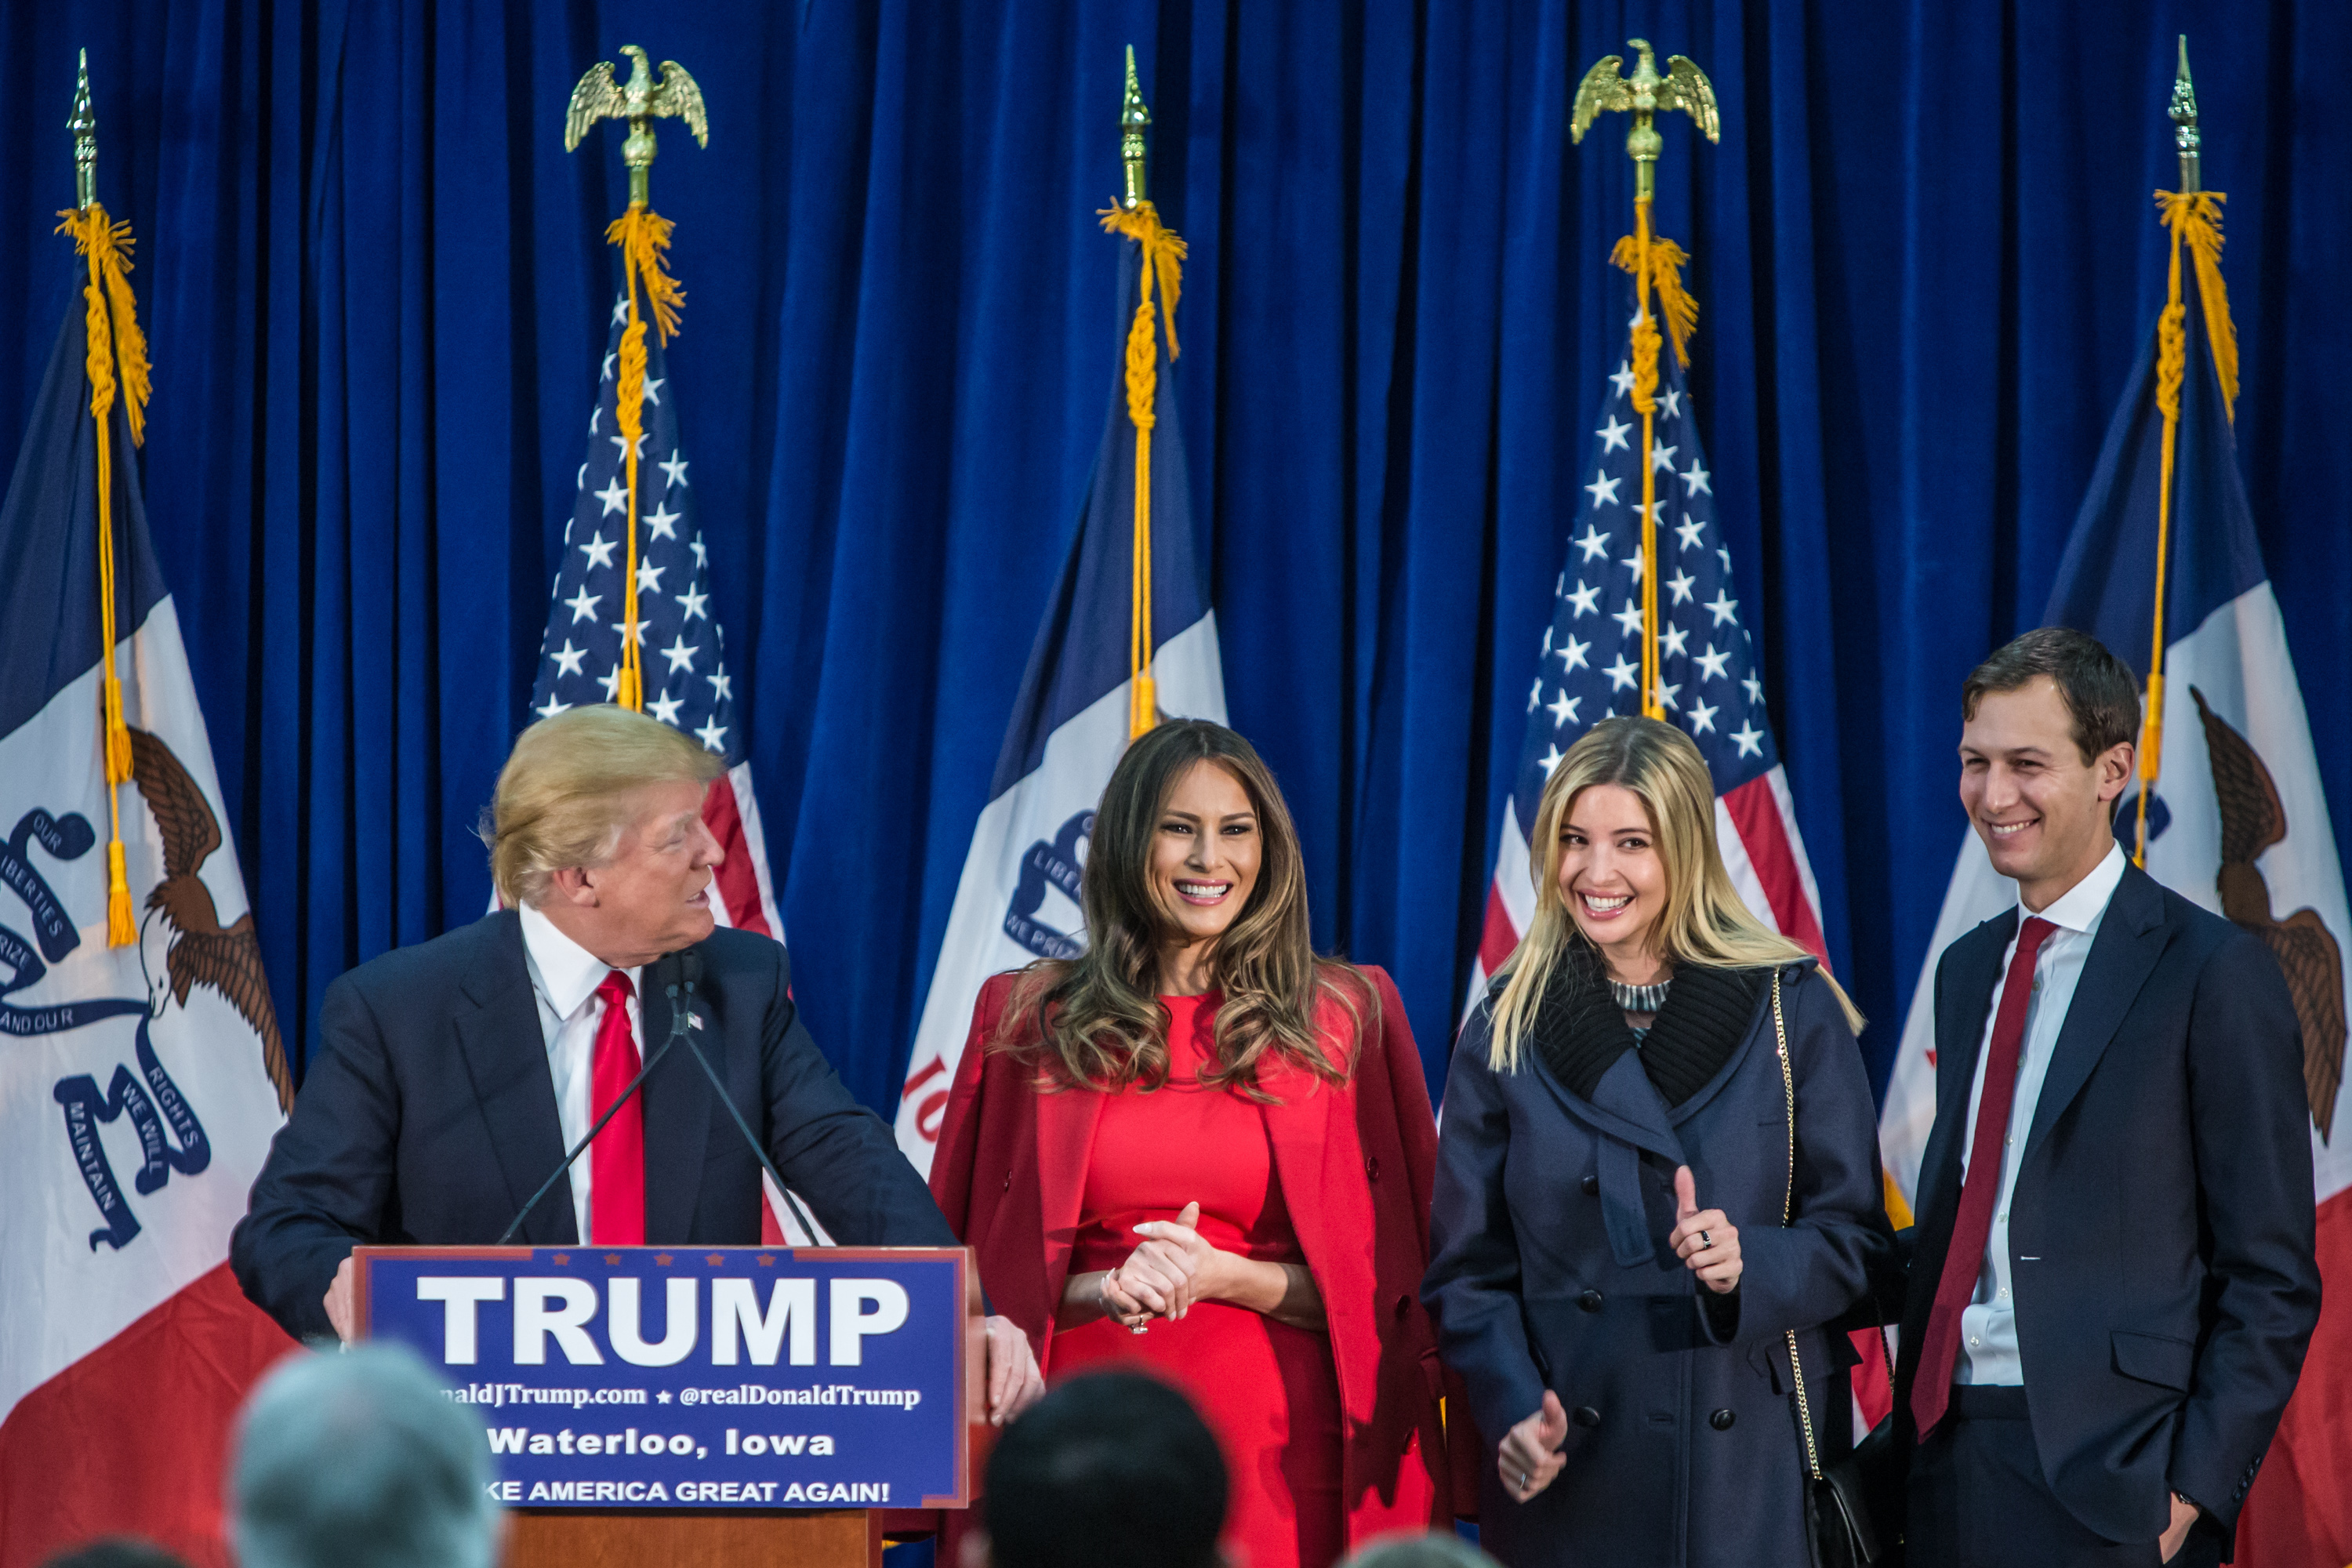 Donald Trump s joined on stage by his wife Melania Trump, daughter Ivanka Trump, and son-in-law Jared Kushner.   (Getty)